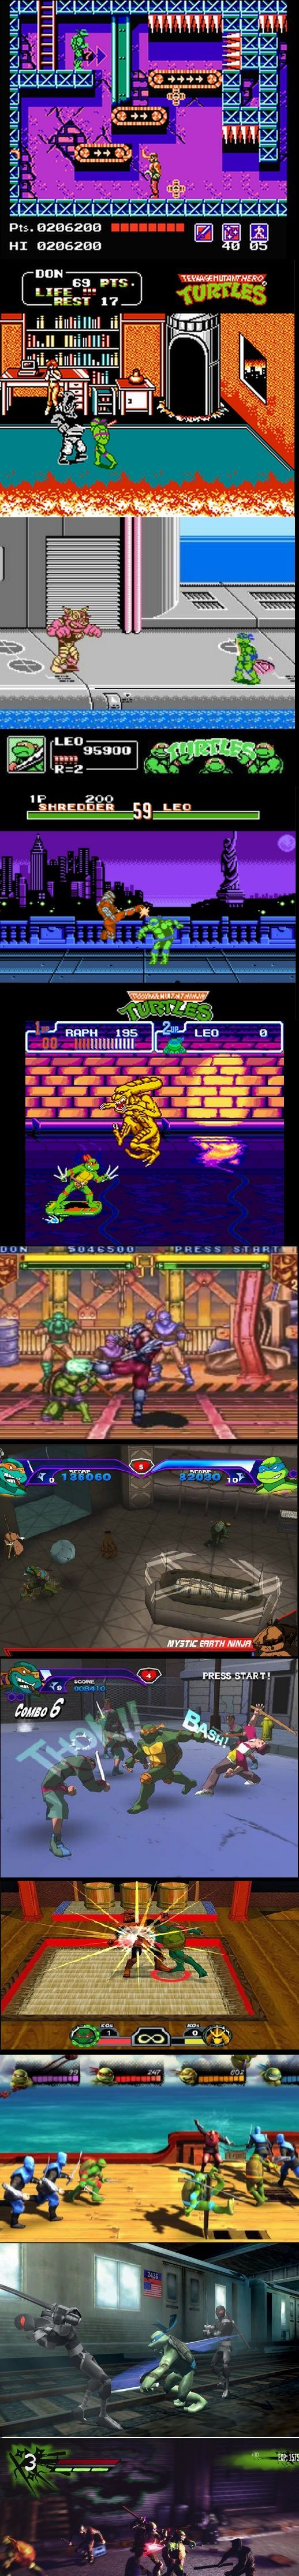 TMNT video games through the years #TMNT #NinjaTurtles #TeenageMutantNinjaTurtles